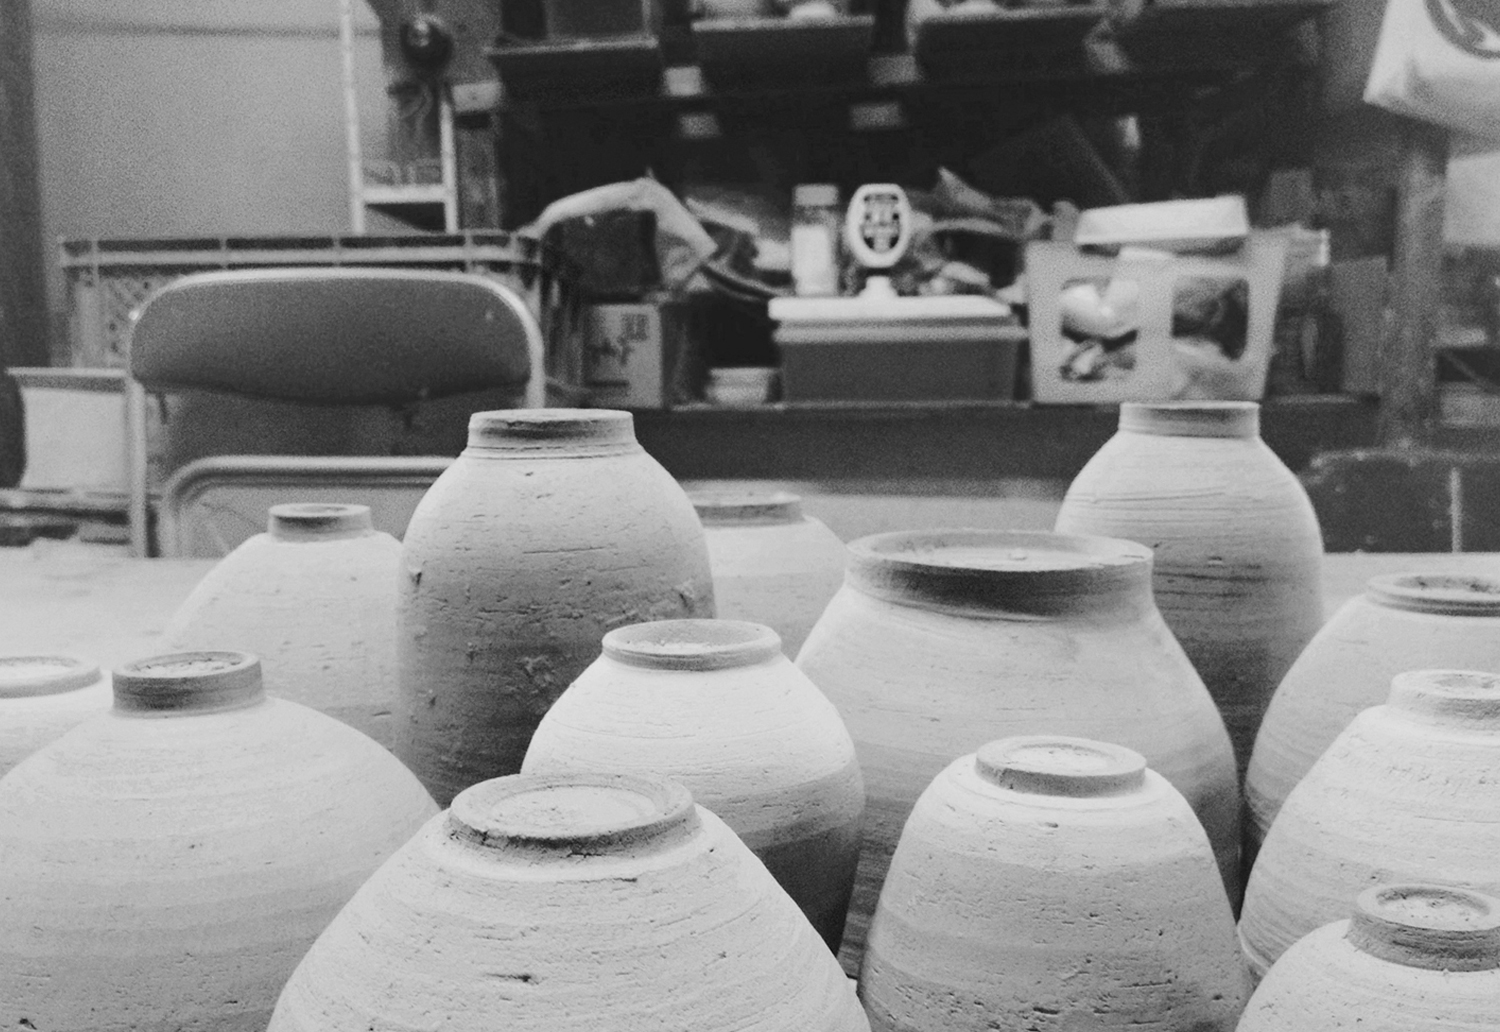 SW_vases_buildings